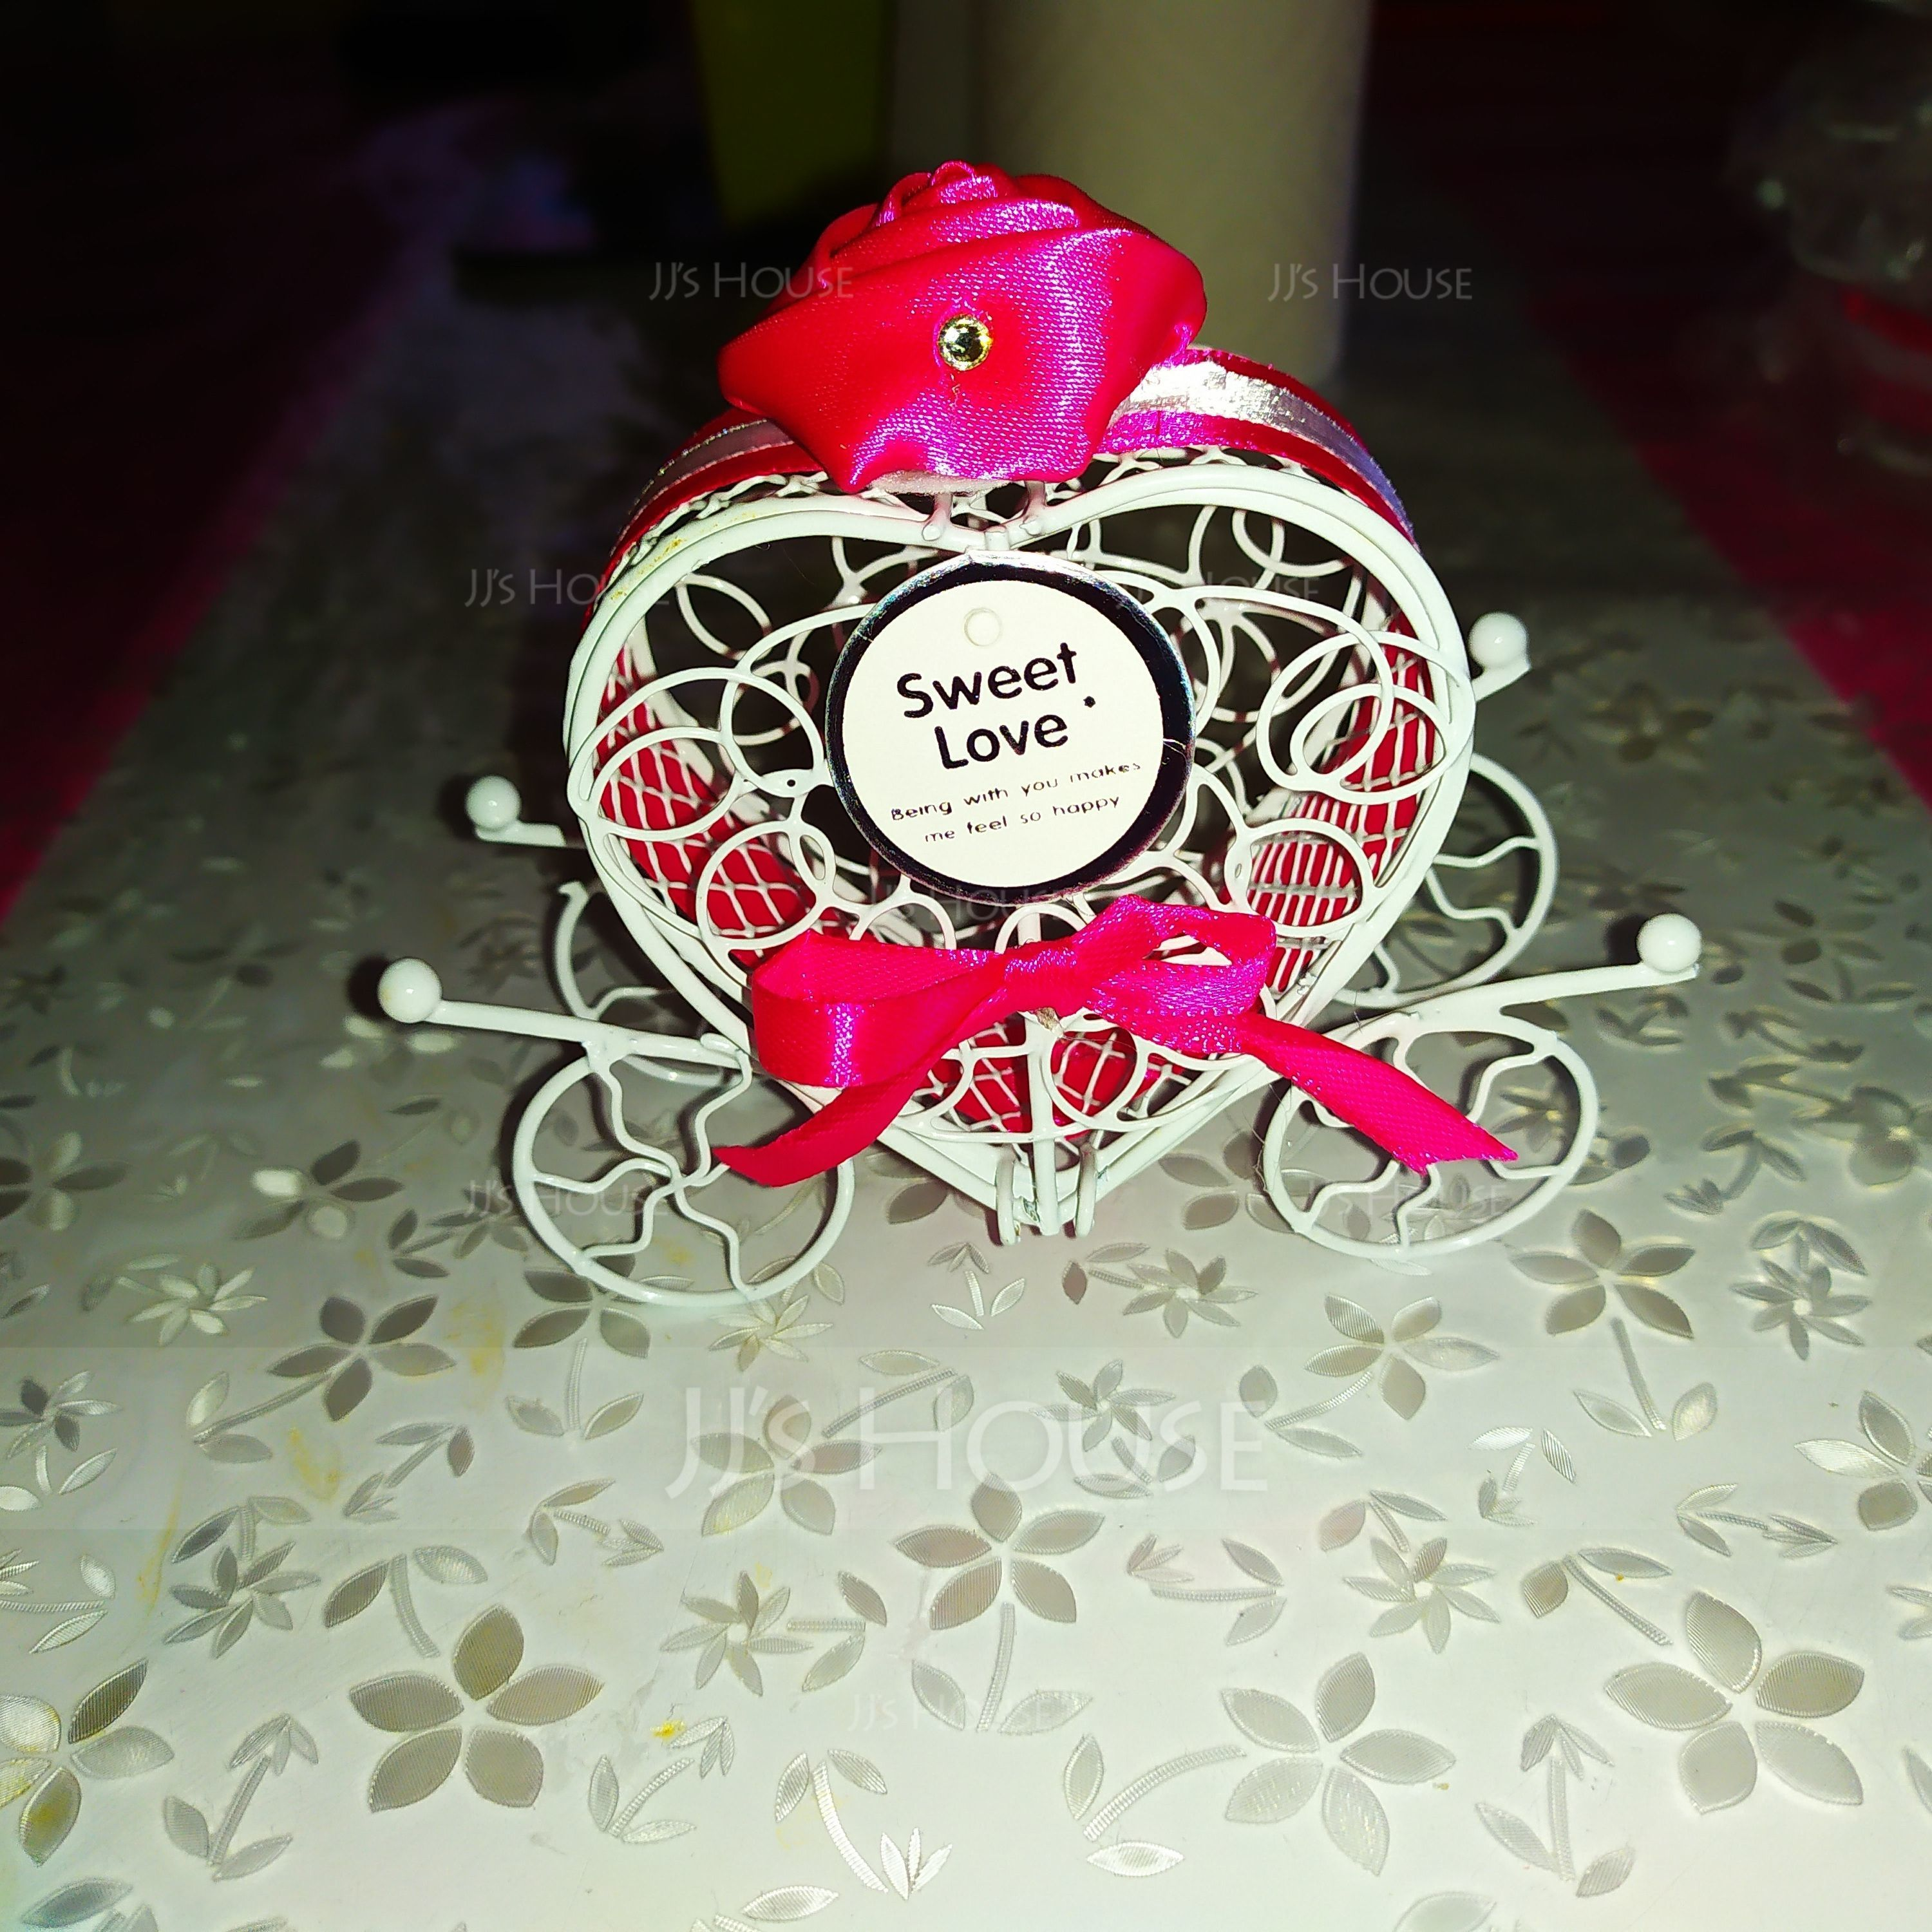 Lovely/Heart style Heart-shaped Metal Favor Boxes & Containers/Candy Jars and Bottles With Ribbons (Set of 12)